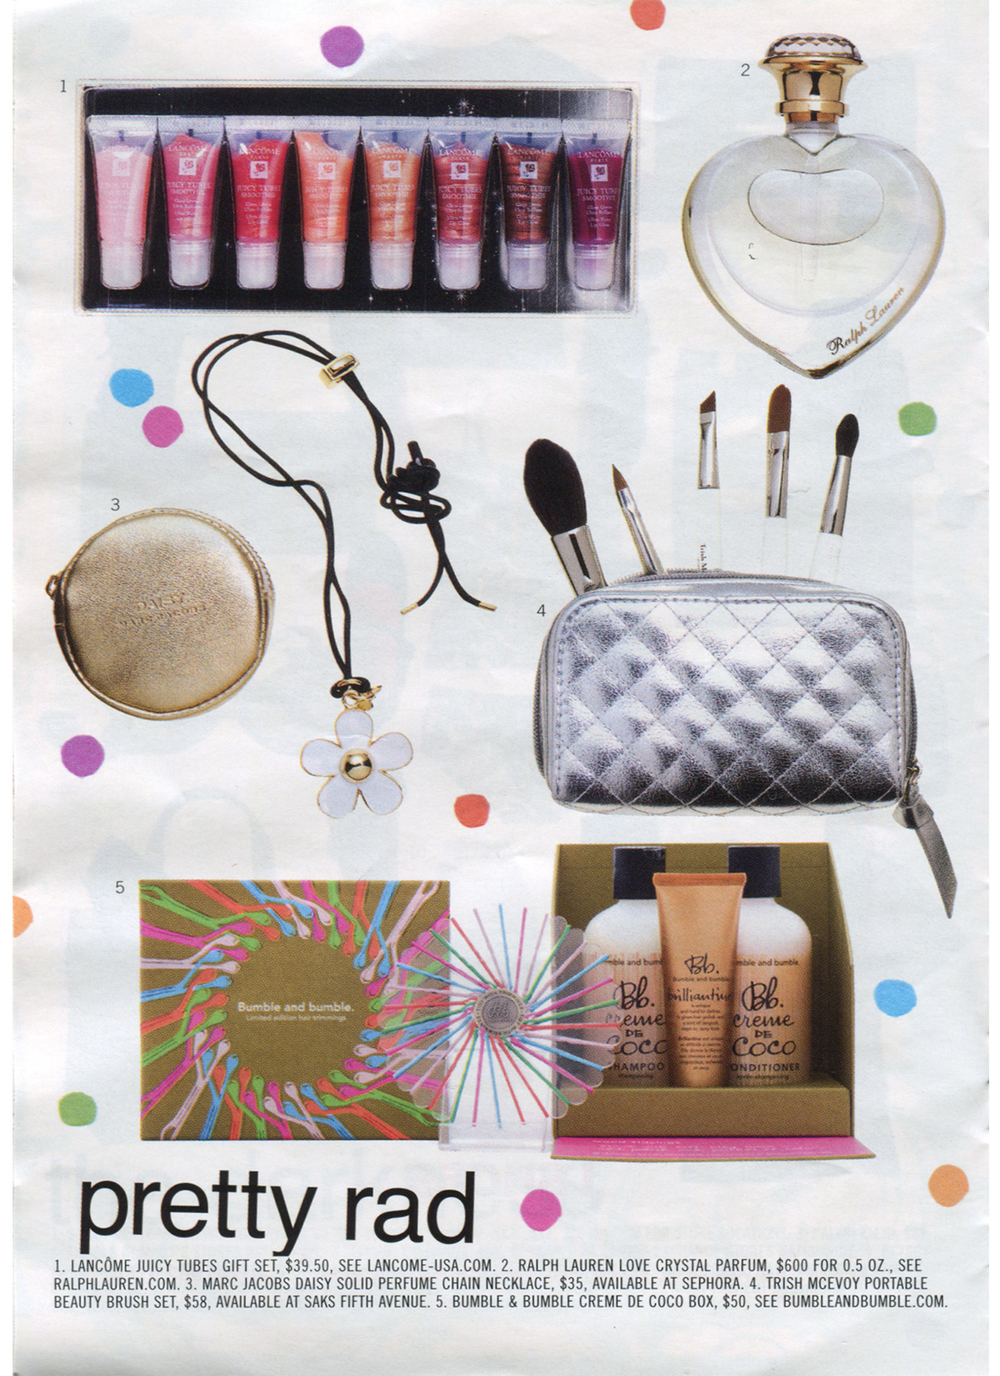 The 'Pinwheel' for Bumble and Bumble's holiday gift box designed by Piet Houtenbos featured in Nylon's holiday gift guide.